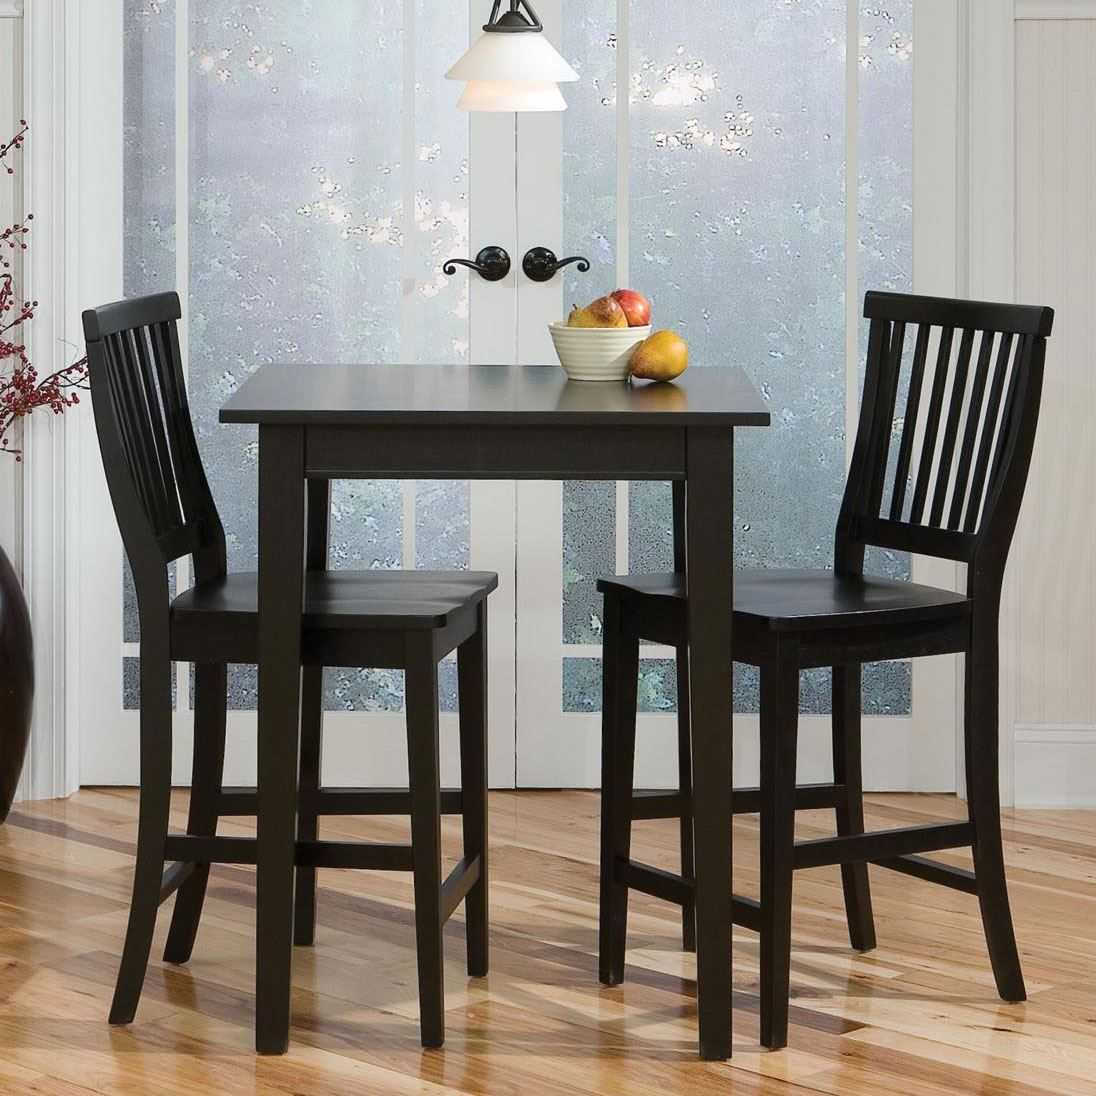 Arts & Crafts Bistro Table & Bar Stools  Dining Sets Pleasing Arts And Crafts Dining Room Set Inspiration